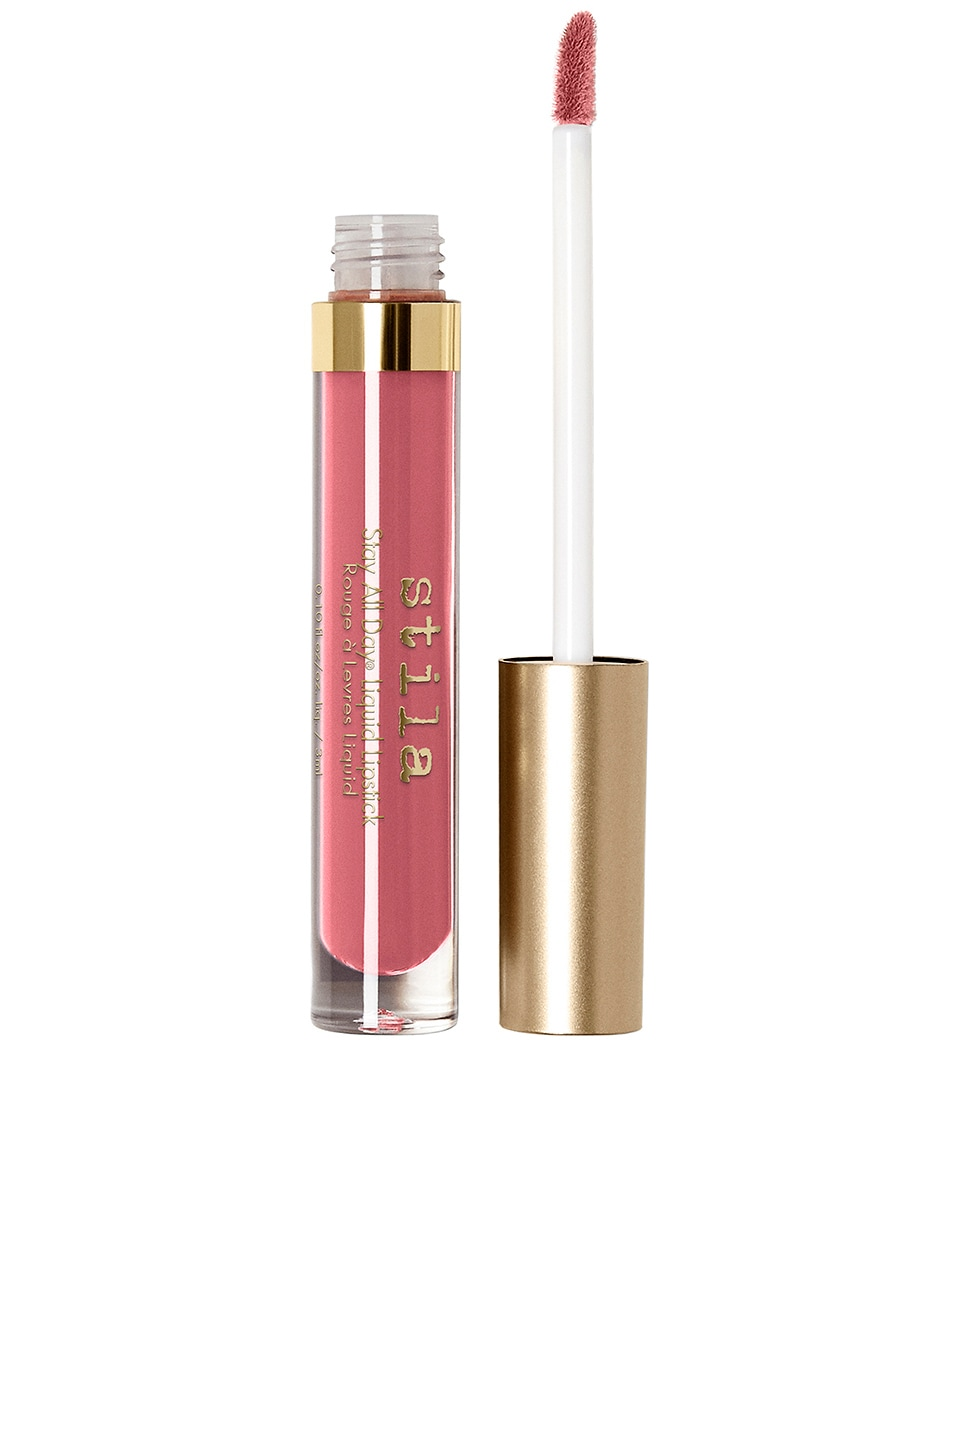 Stila Stay All Day Liquid Lipstick in Patina